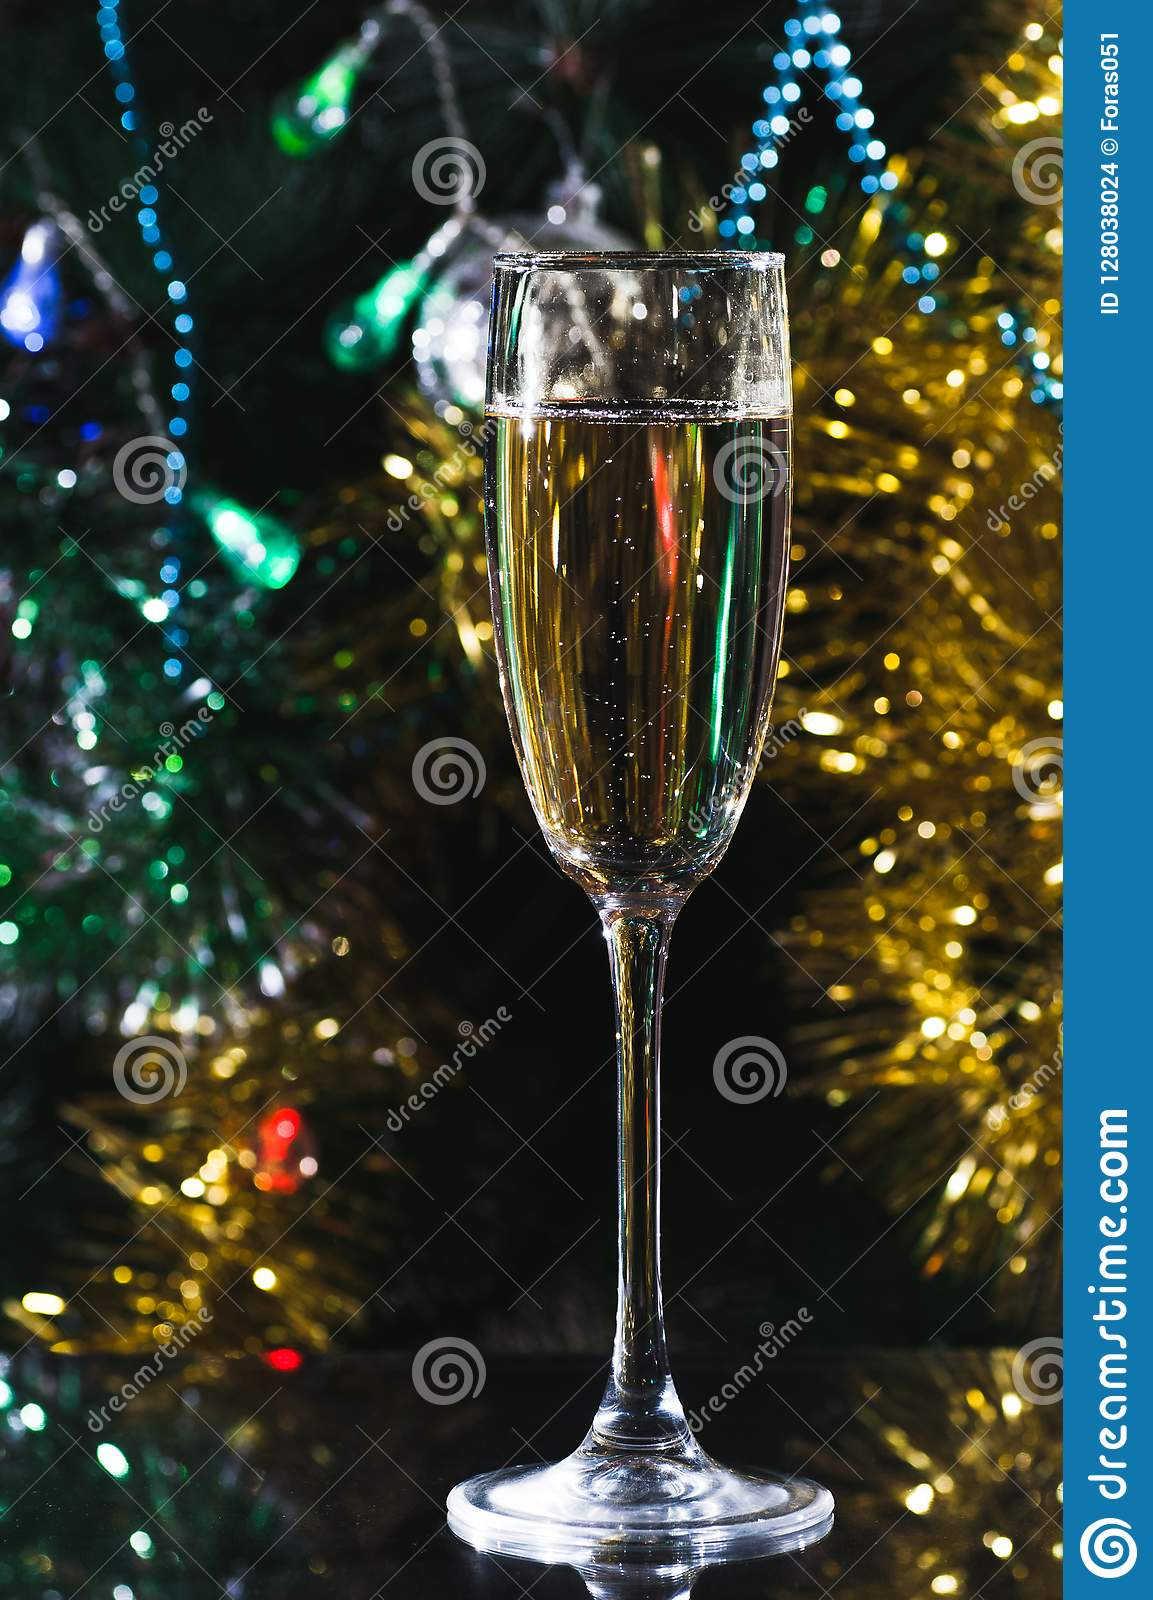 A glass of champagne under the Christmas tree